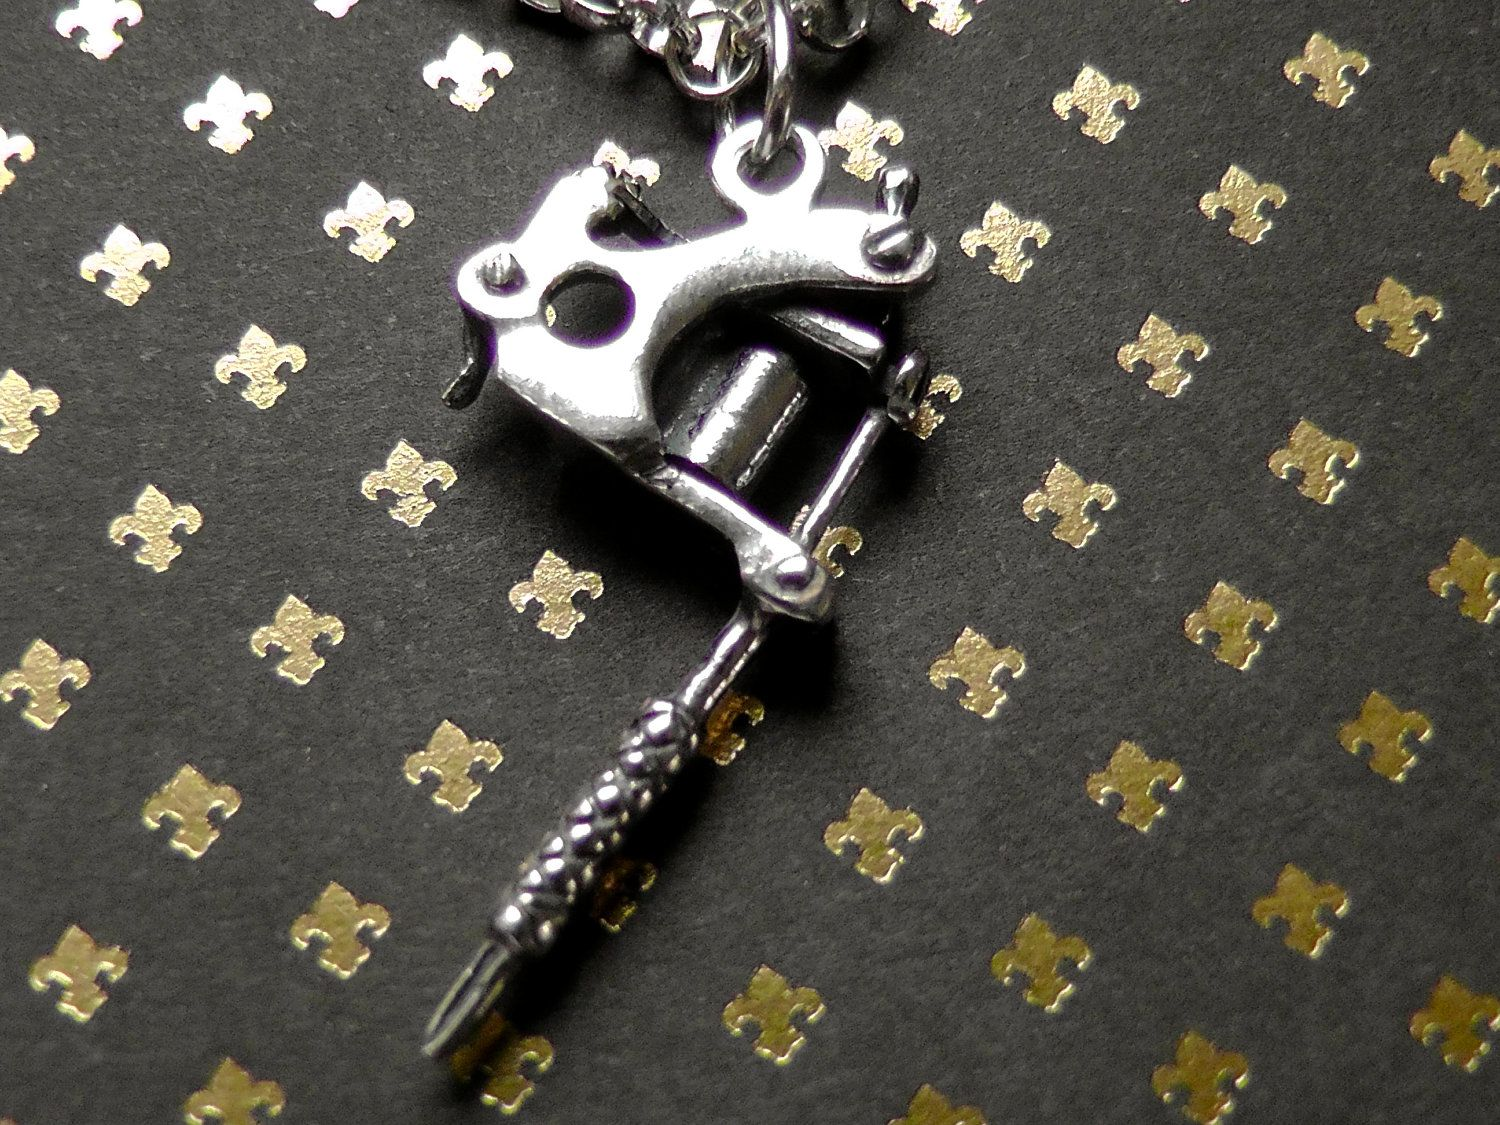 Sterling silver tattoo gun charm necklace silver 5500 via etsy sterling silver tattoo gun charm necklace silver 5500 via etsy mozeypictures Gallery